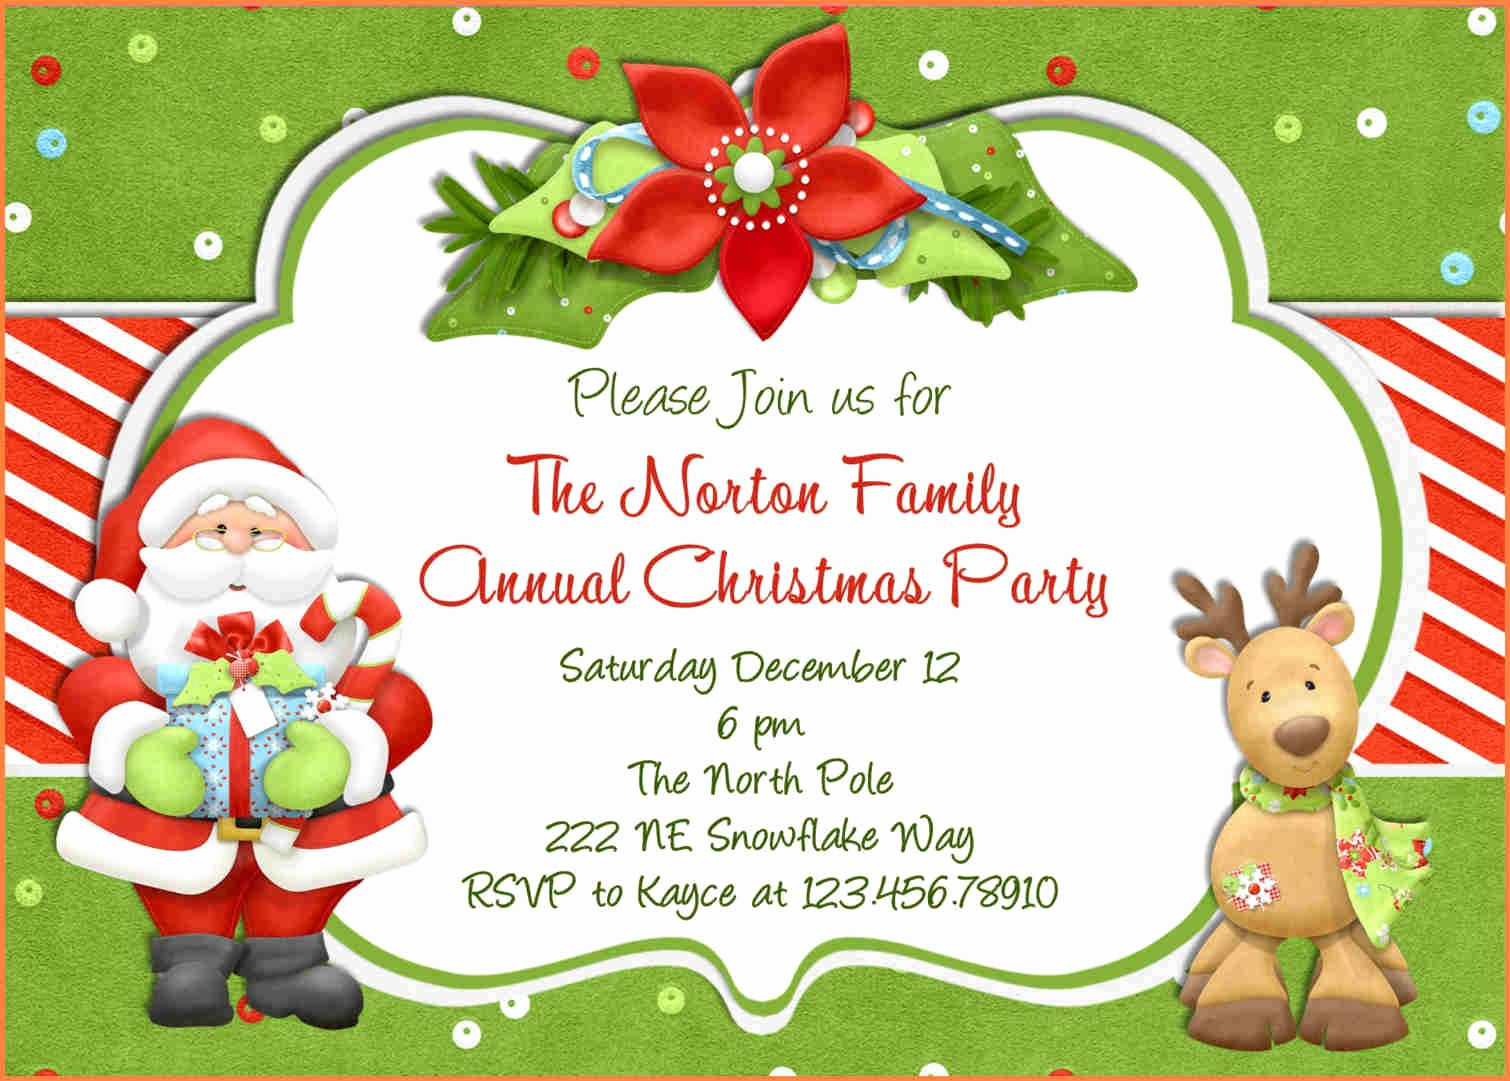 Christmas Party Invite Free Template Elegant 15 Christmas Party Invitation Template